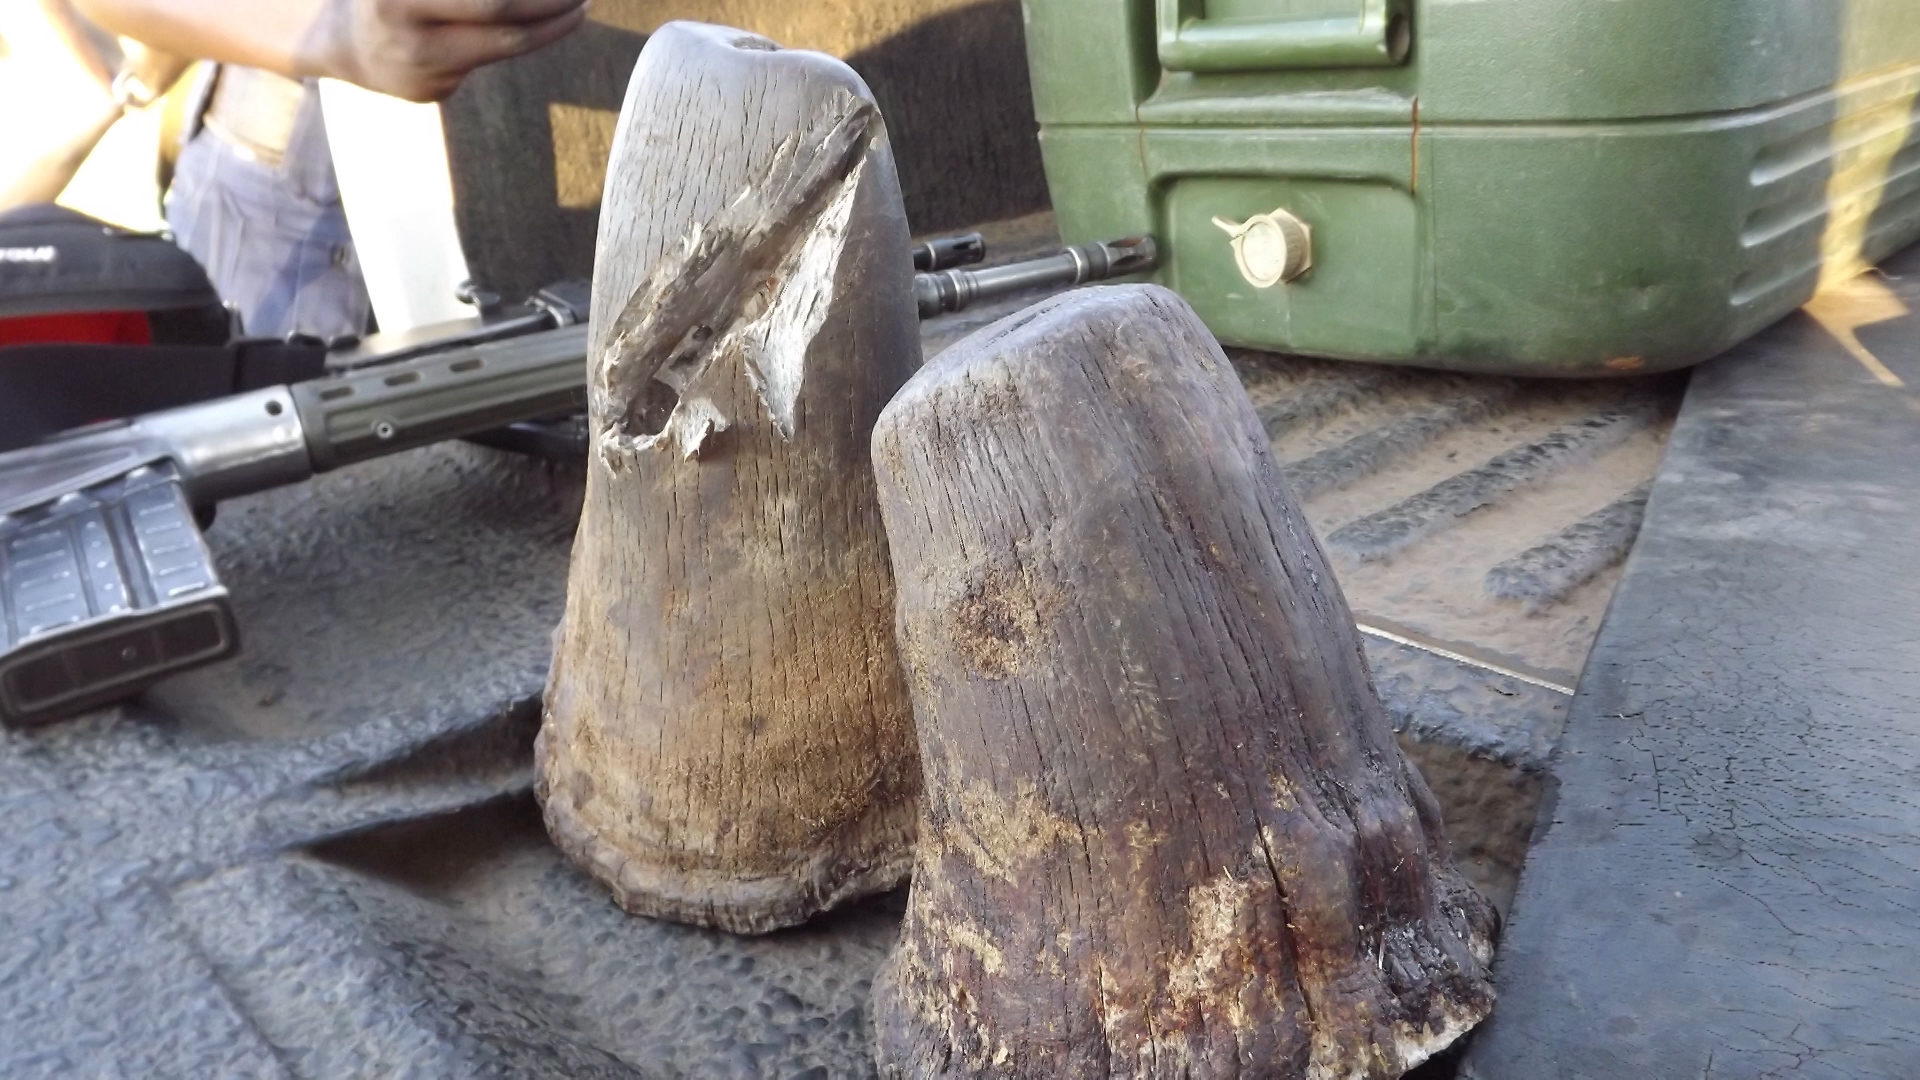 China Reverses Ban on The Use of Rhino Horn and Tiger Bones in Traditional Medicine. By Dr. Chris Brown.